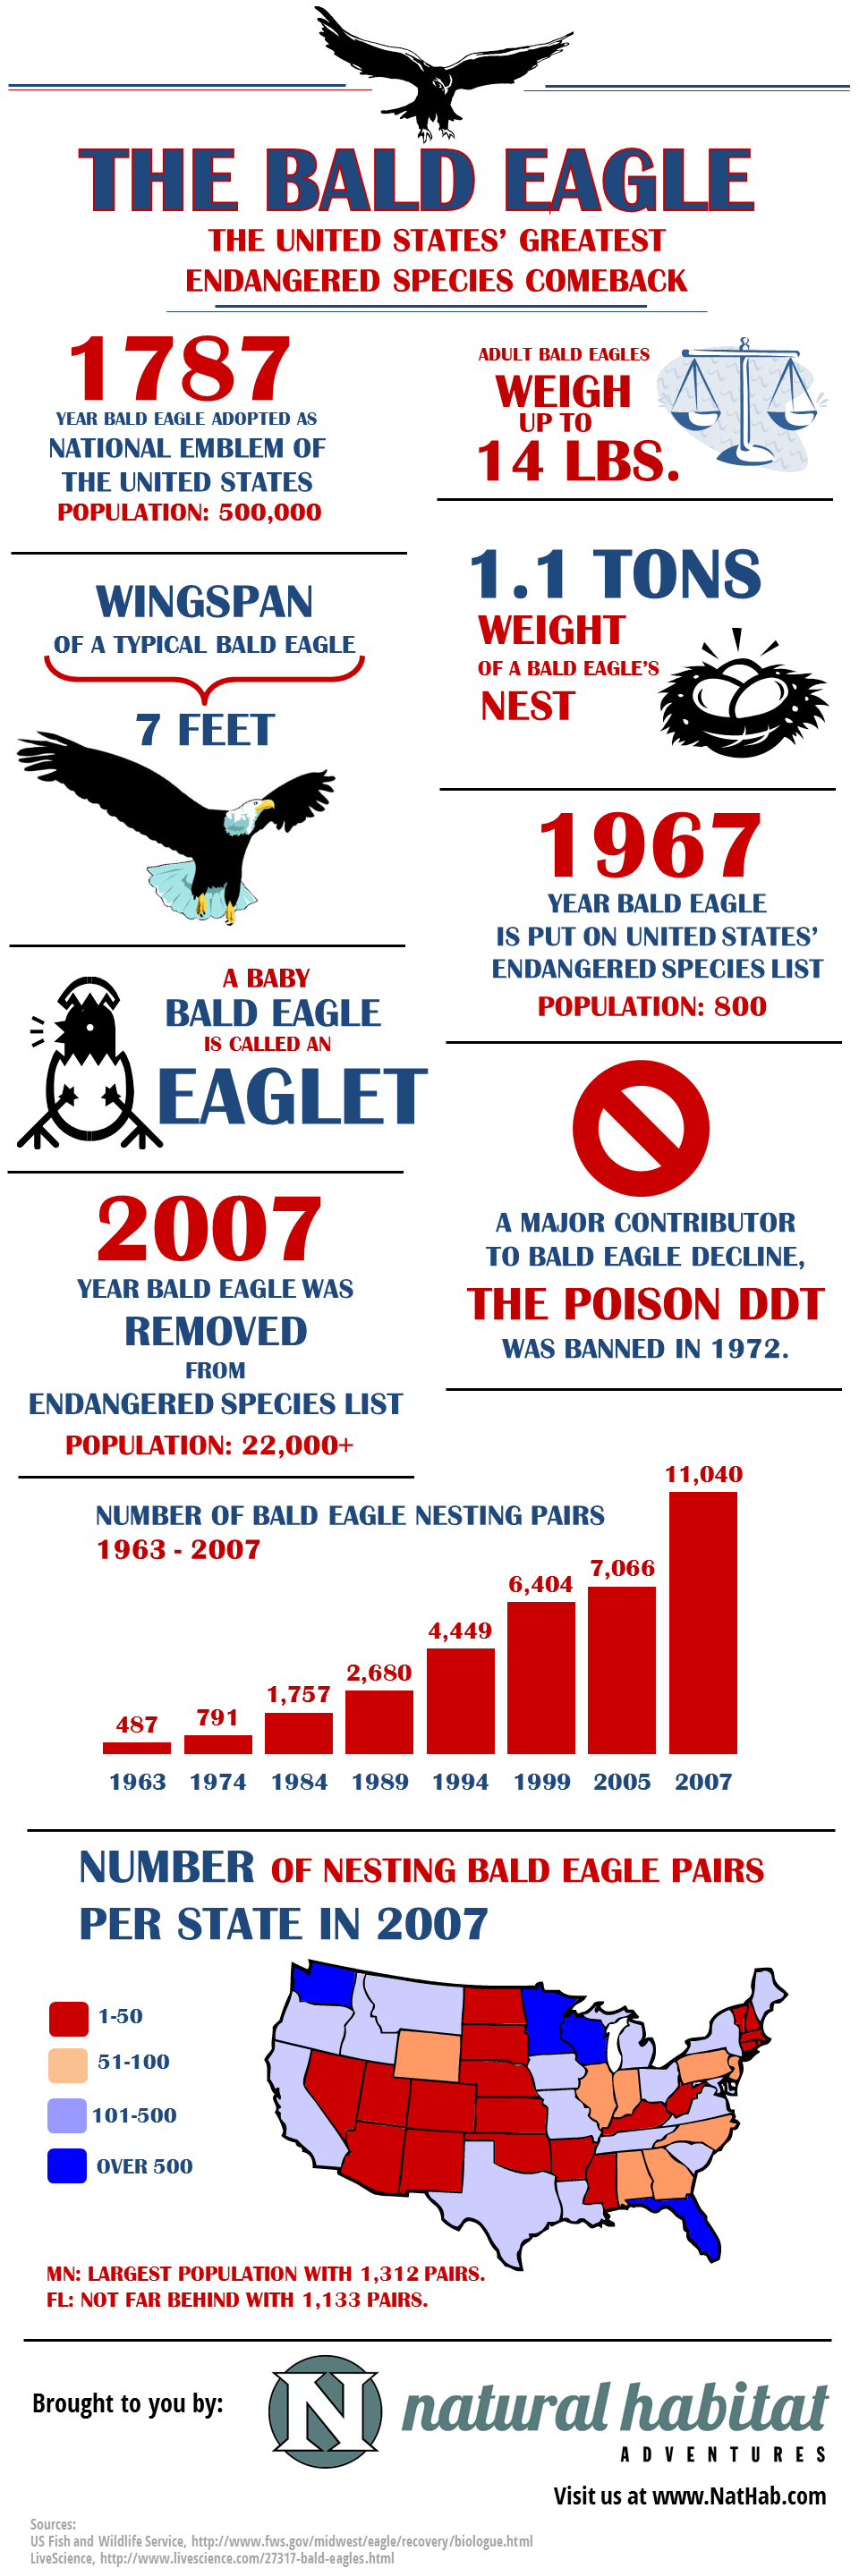 Bald Eagle Facts for 4th of July [Infographic]